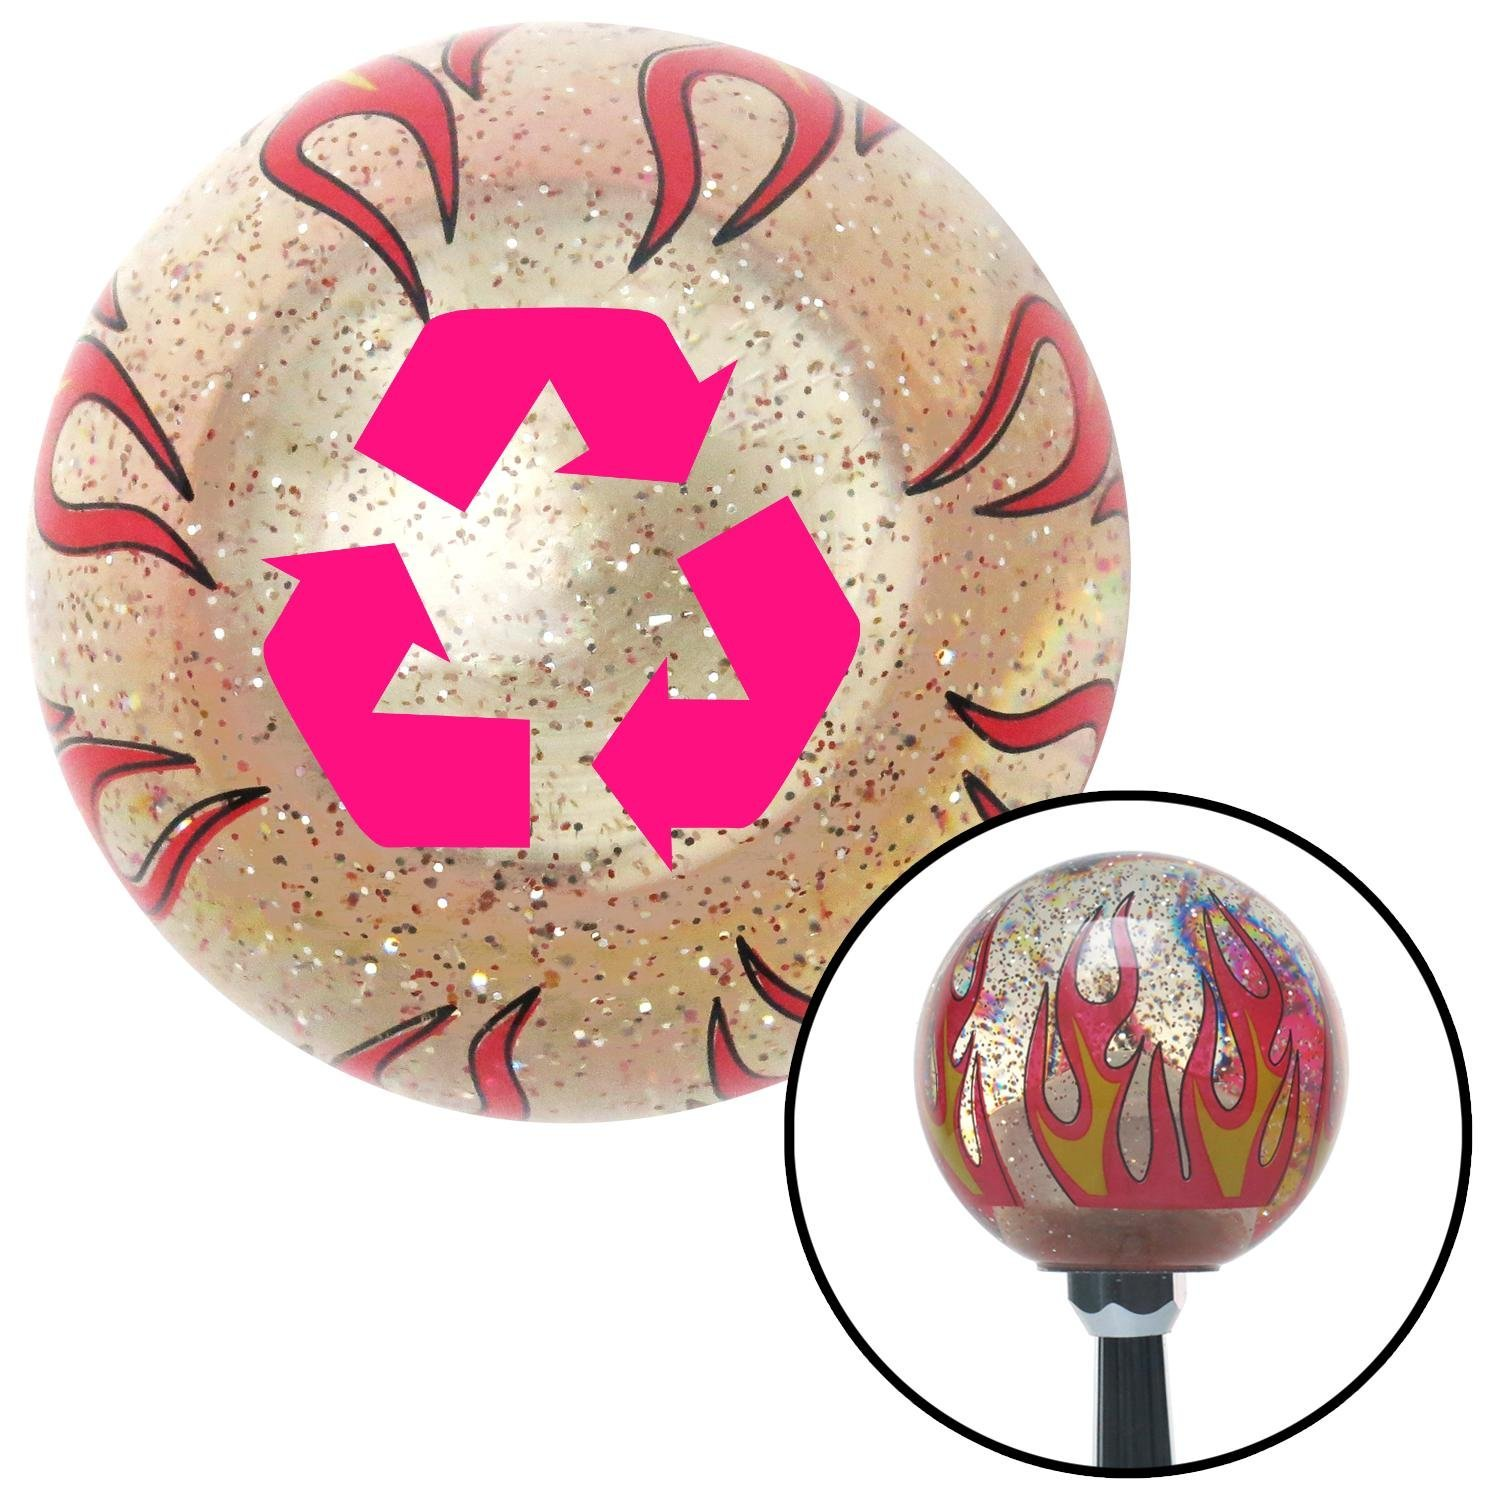 American Shifter 231564 Clear Flame Metal Flake Shift Knob with M16 x 1.5 Insert Pink Recycle